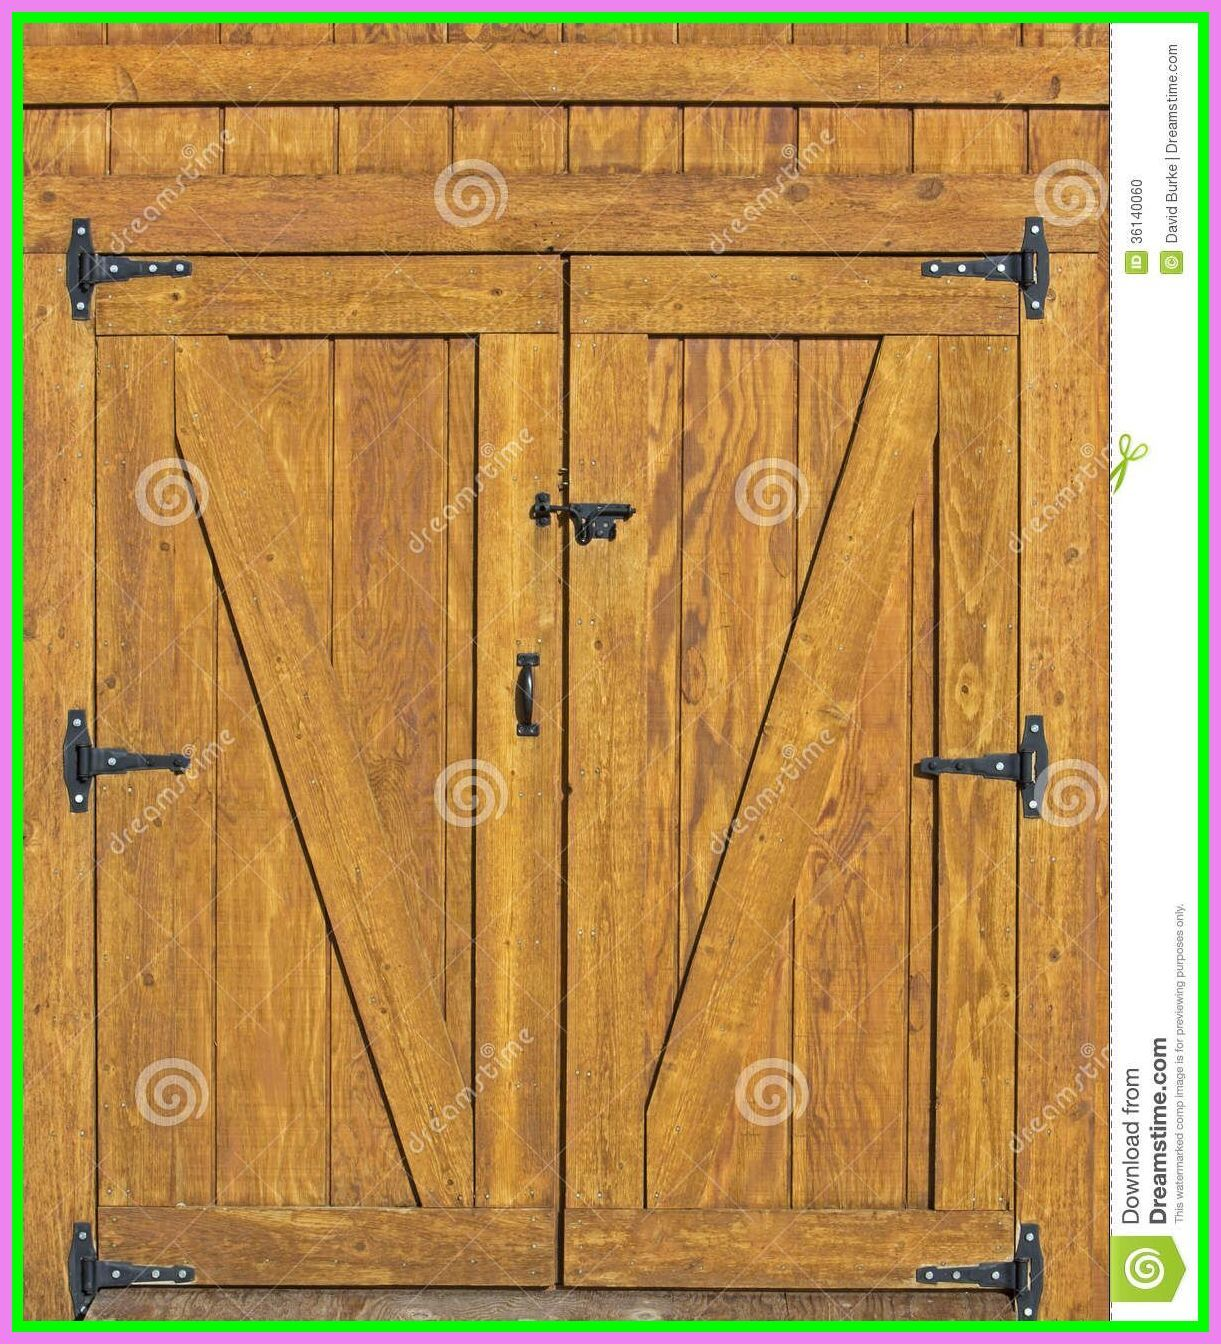 42 Reference Of Barn Door External Hinged In 2020 Barn Door Hinges Old Barn Doors Exterior Barn Doors